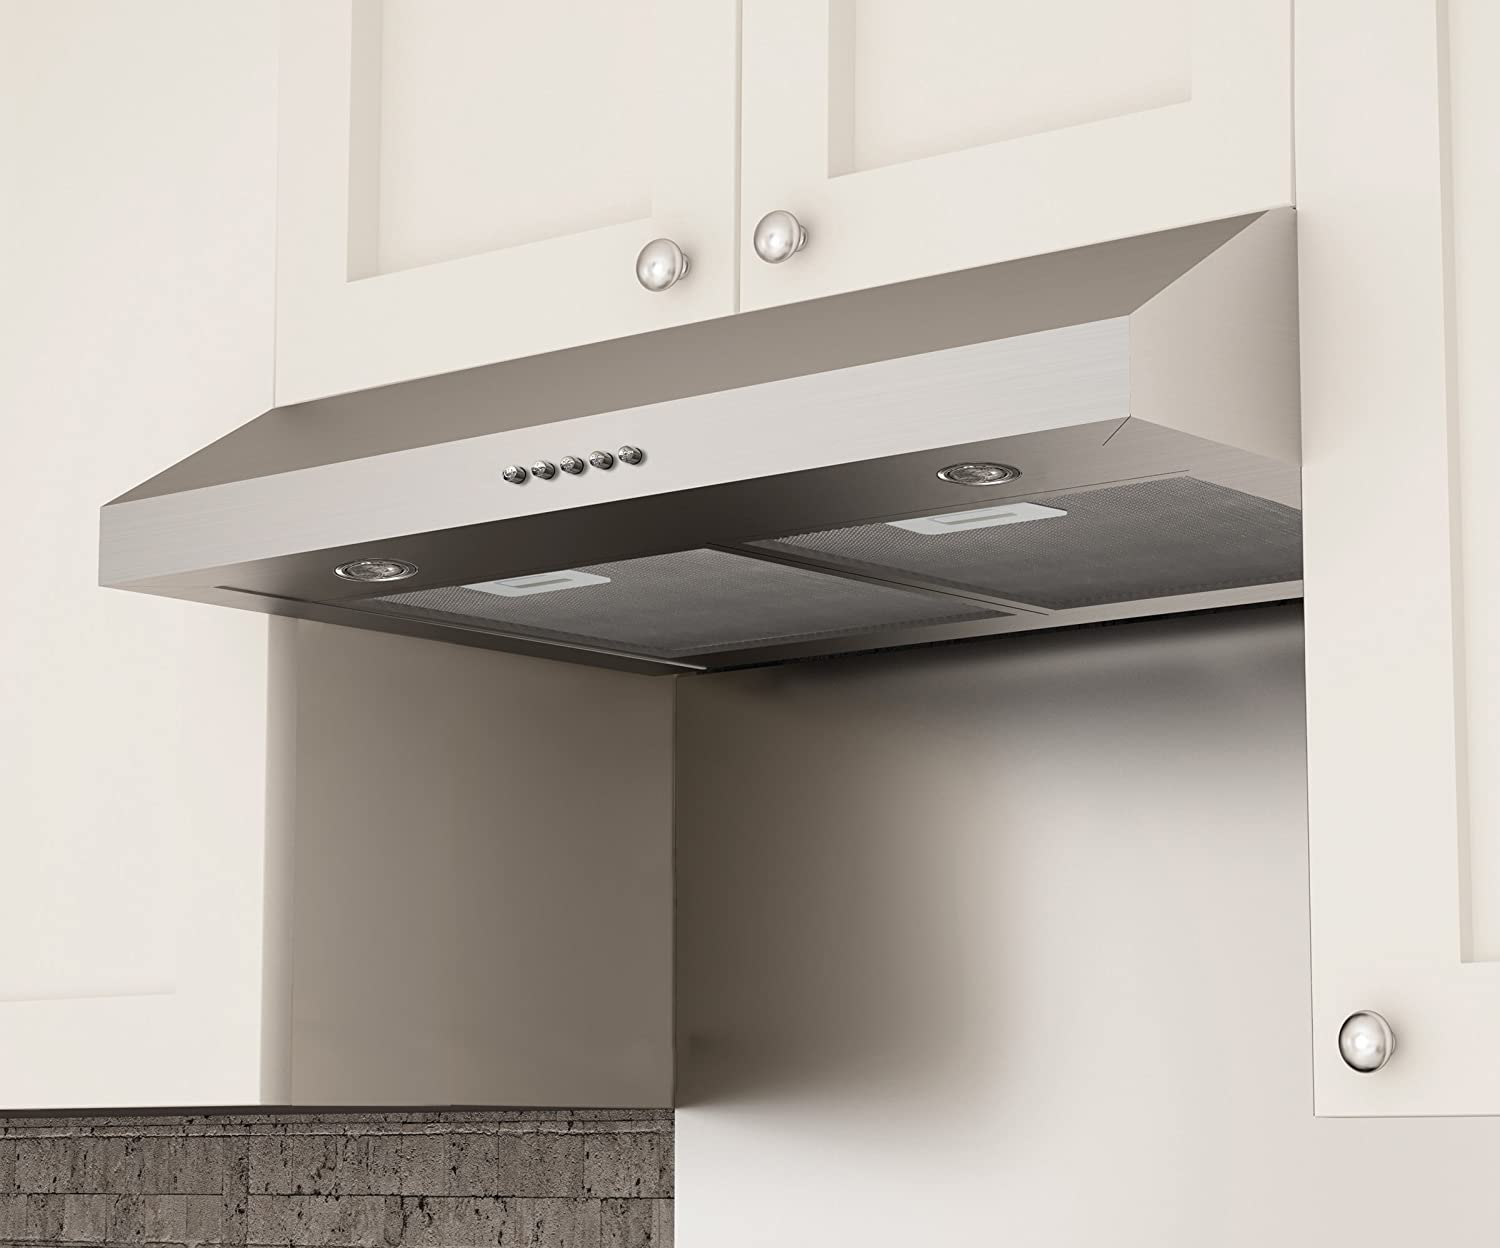 Amazon.com: Ancona Slim SD330 Under-Cabinet Range Hood, 30-Inch ...